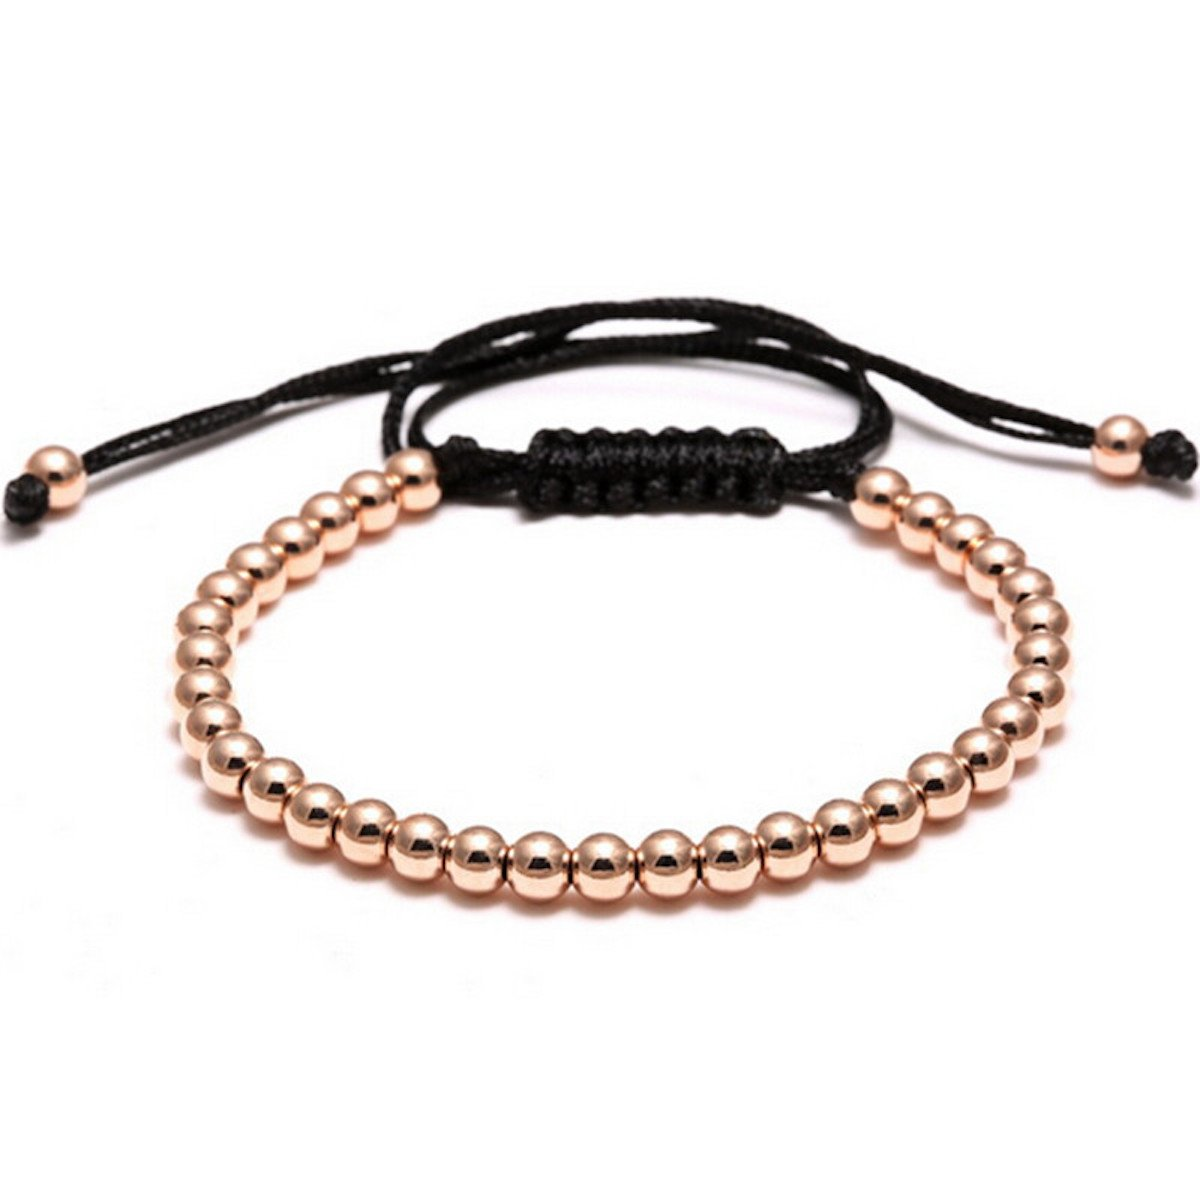 Macrame Braided 4mm Round Copper Beads Bracelet by MayaBracelets (Rose Gold)